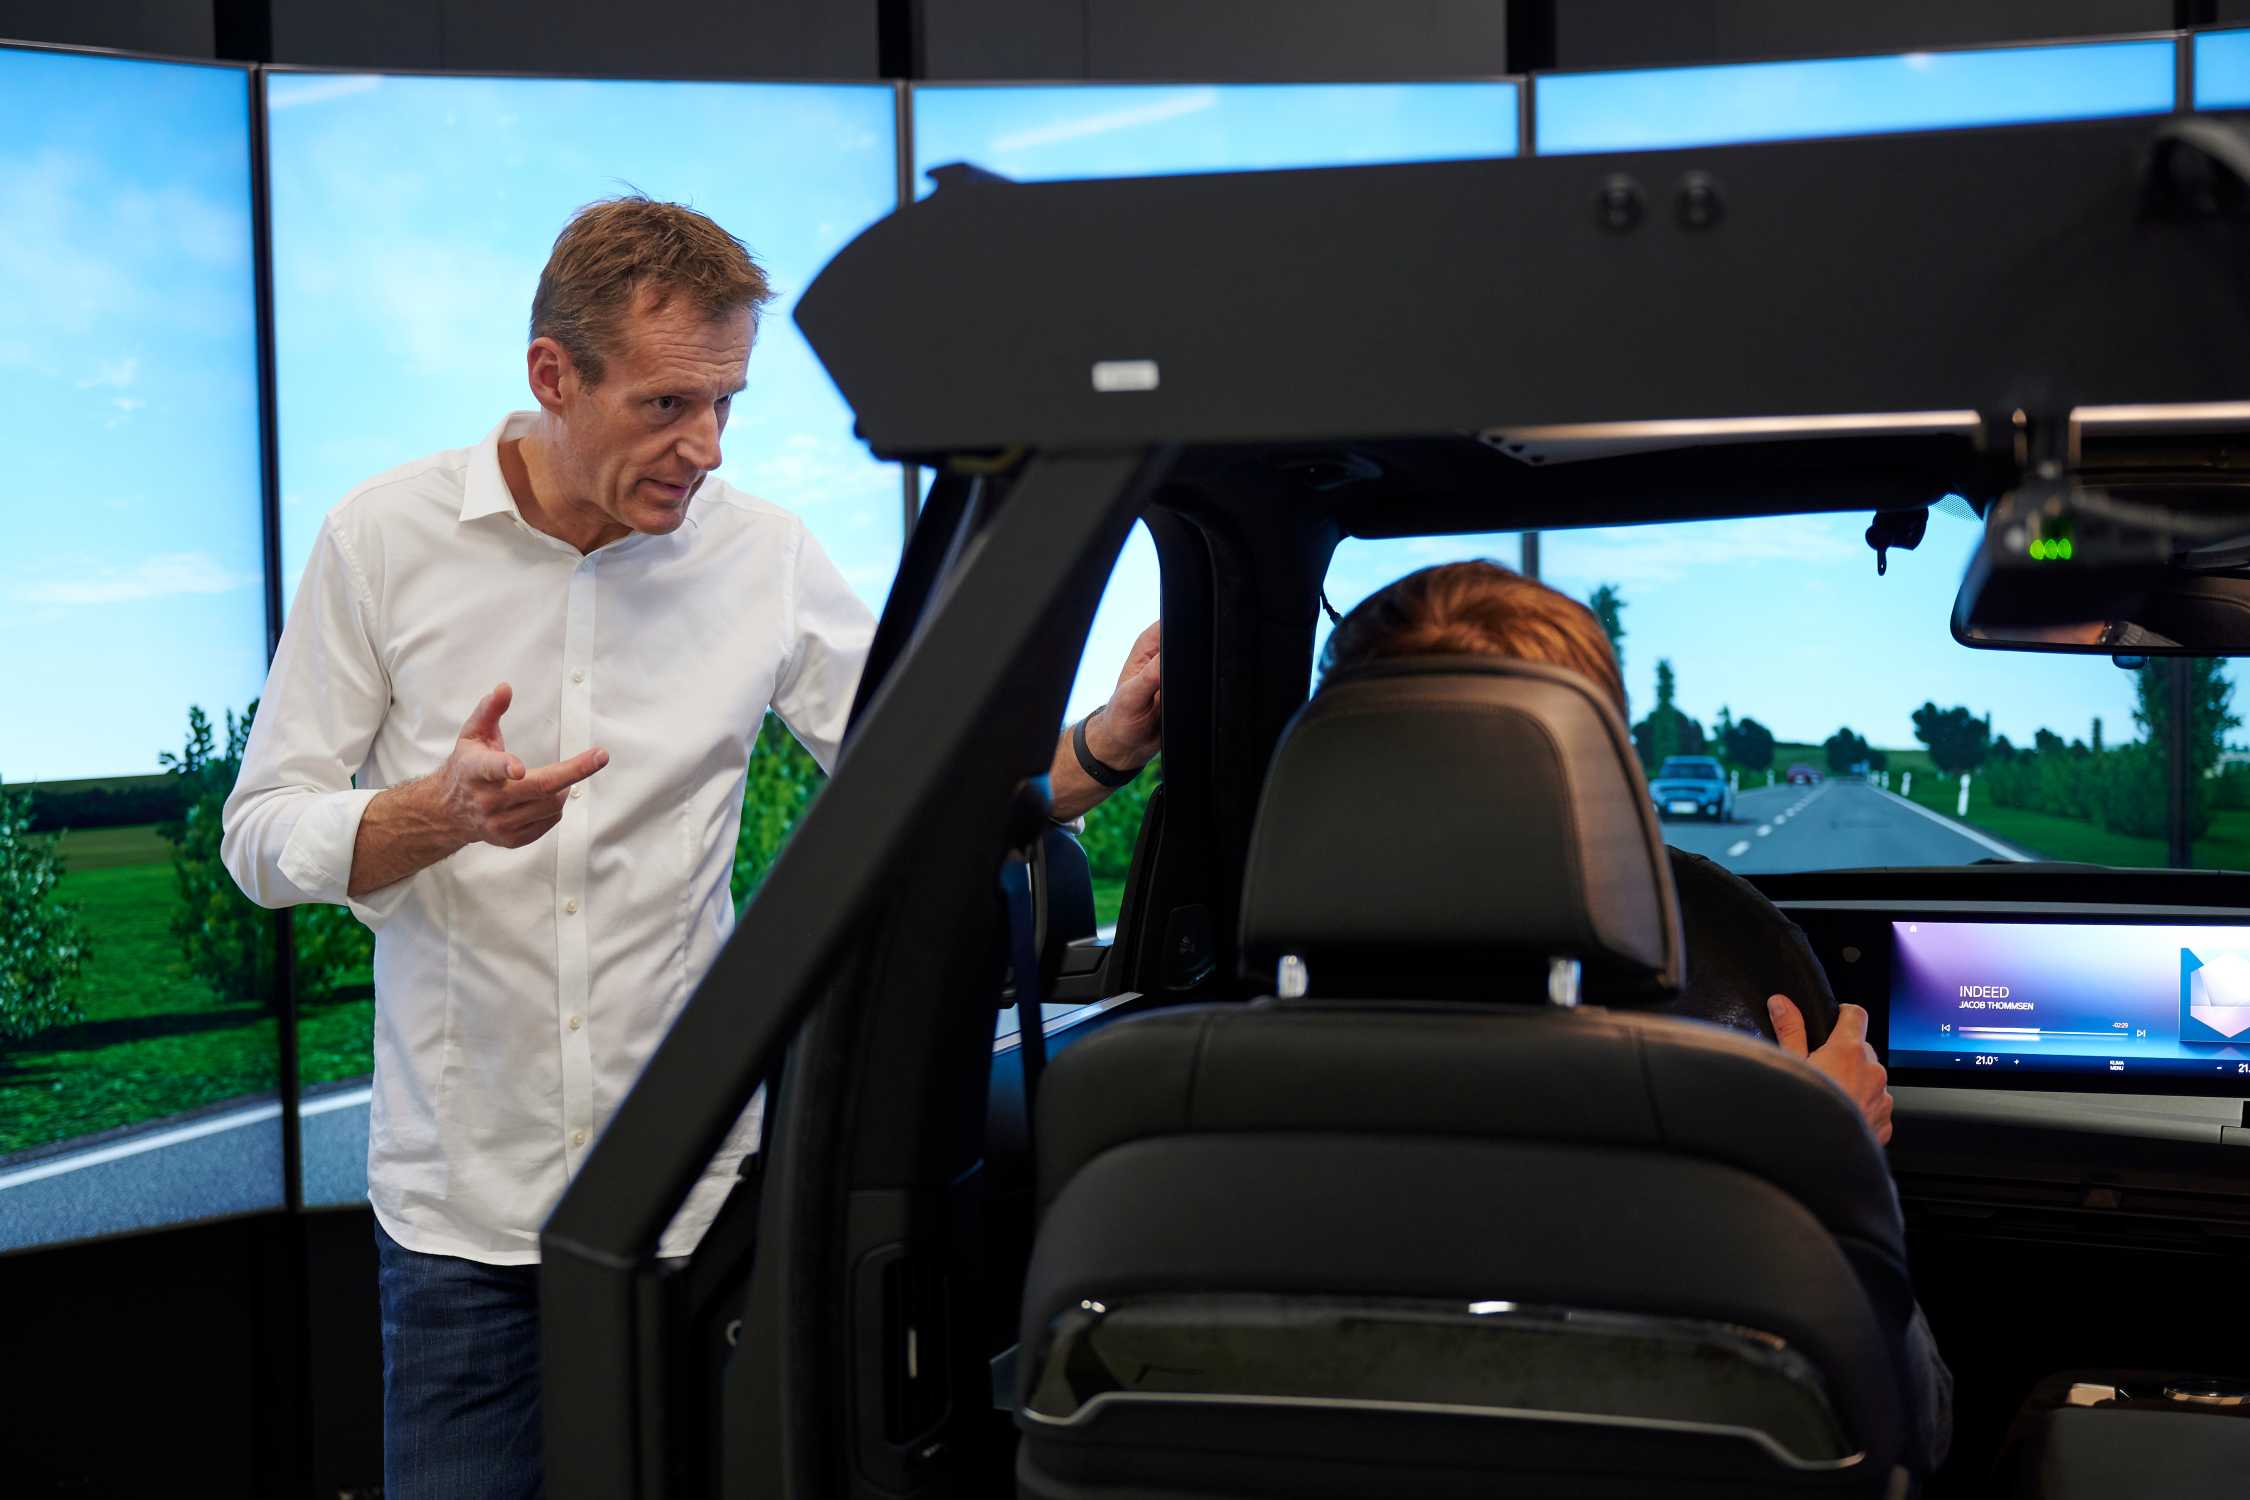 #NEXTGen 2020: Martin Peller, project lead of the new driving simulation center in conversation with a test person. (11/20)